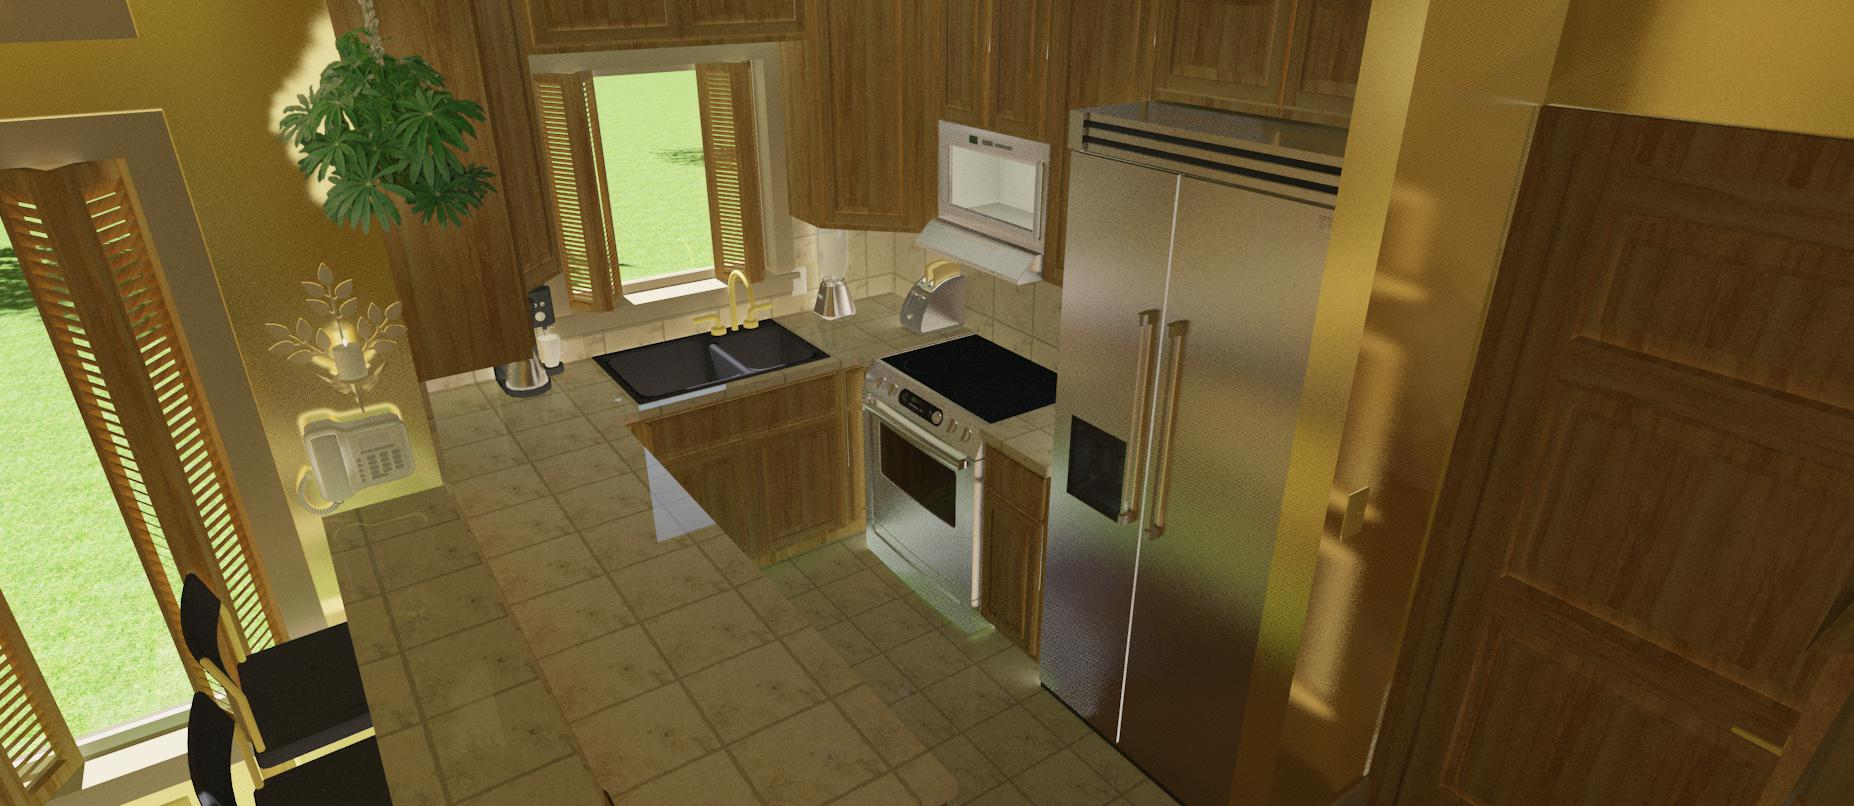 TH-01 KITCHEN 1